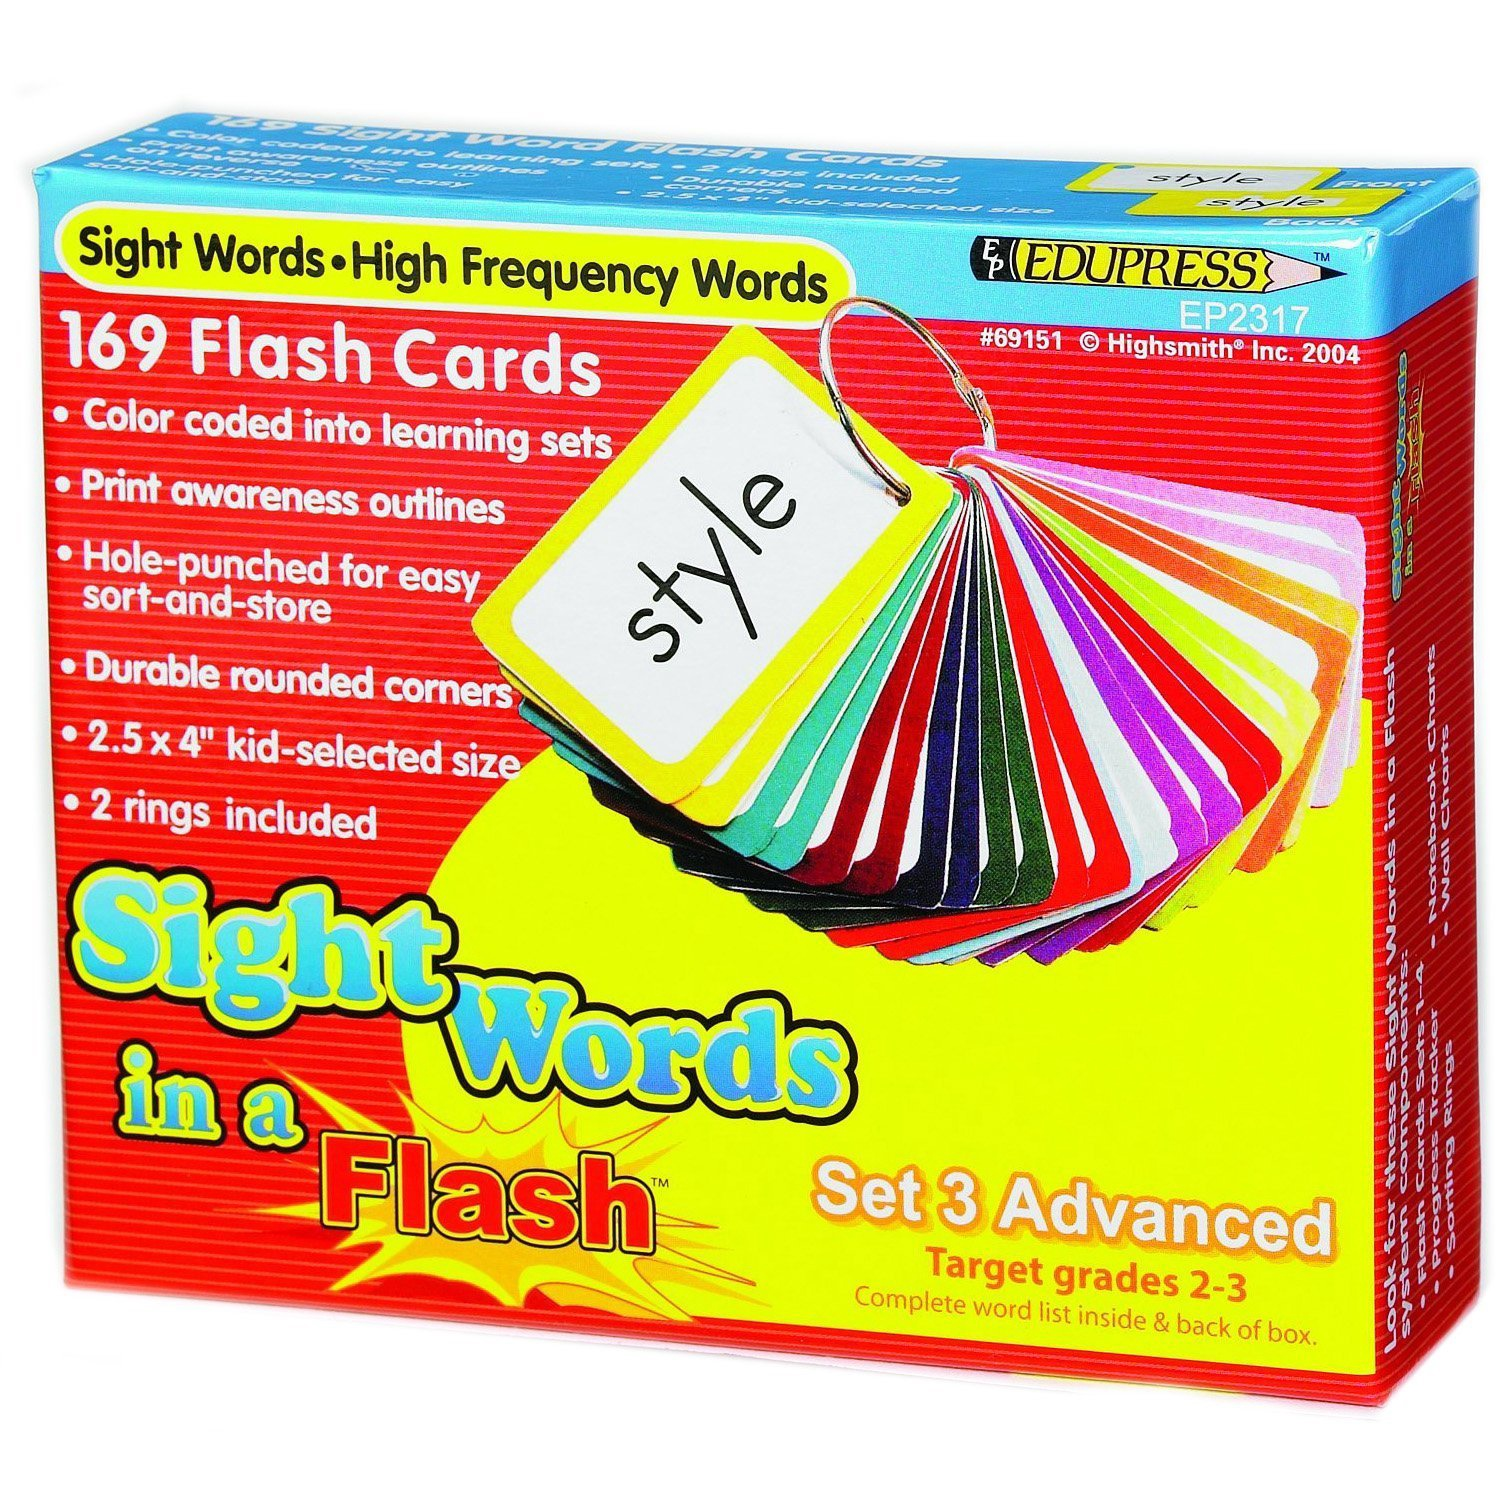 X EP 62317 SIGHT WORDS INA FLASH SET 3 ADVANCED